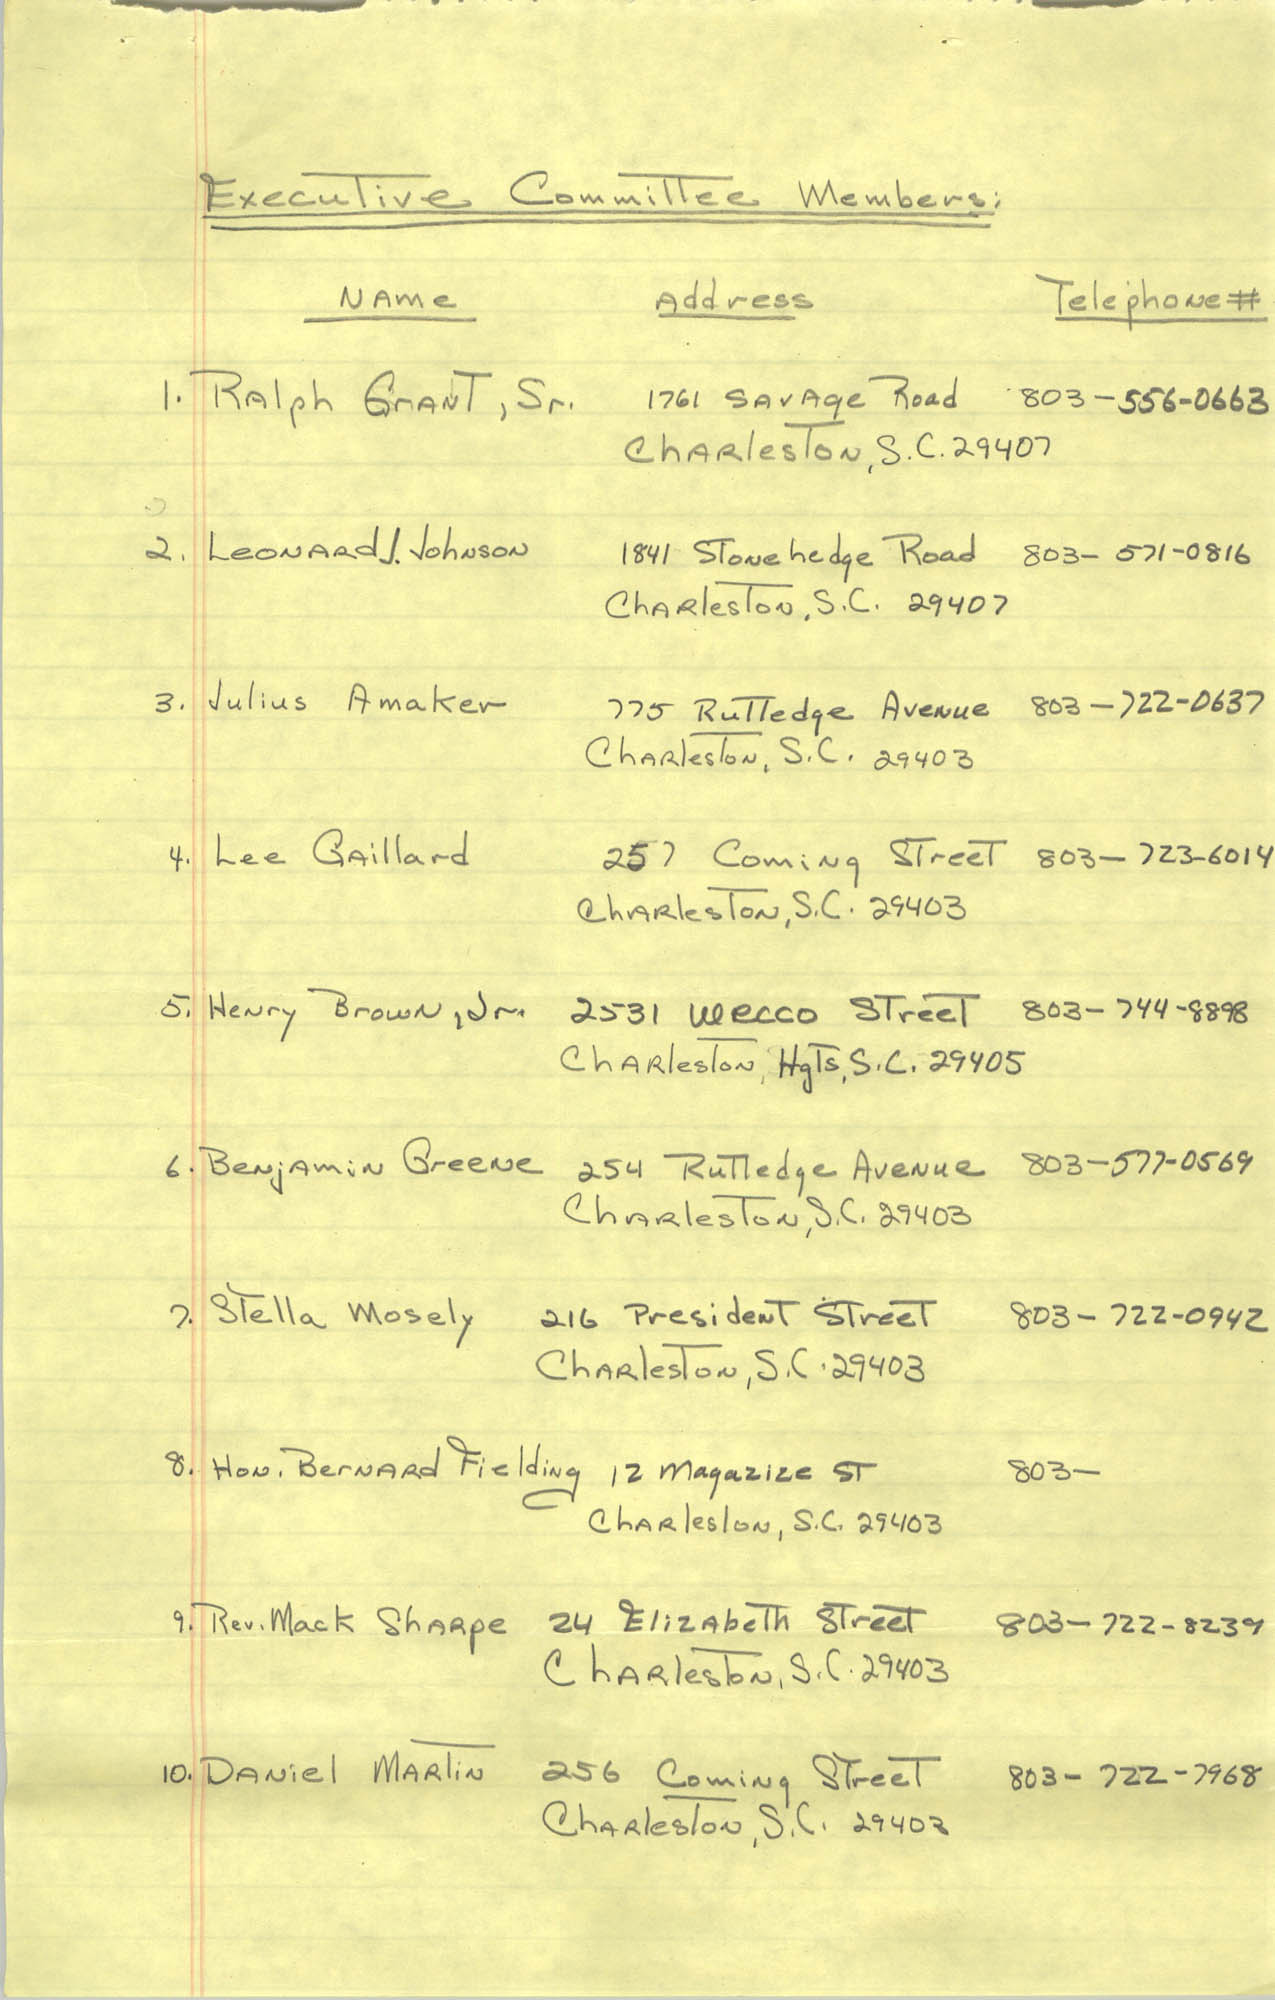 1982-83 Roster of Officials of the Charleston, South Carolina Branch of the NAACP, Page 2